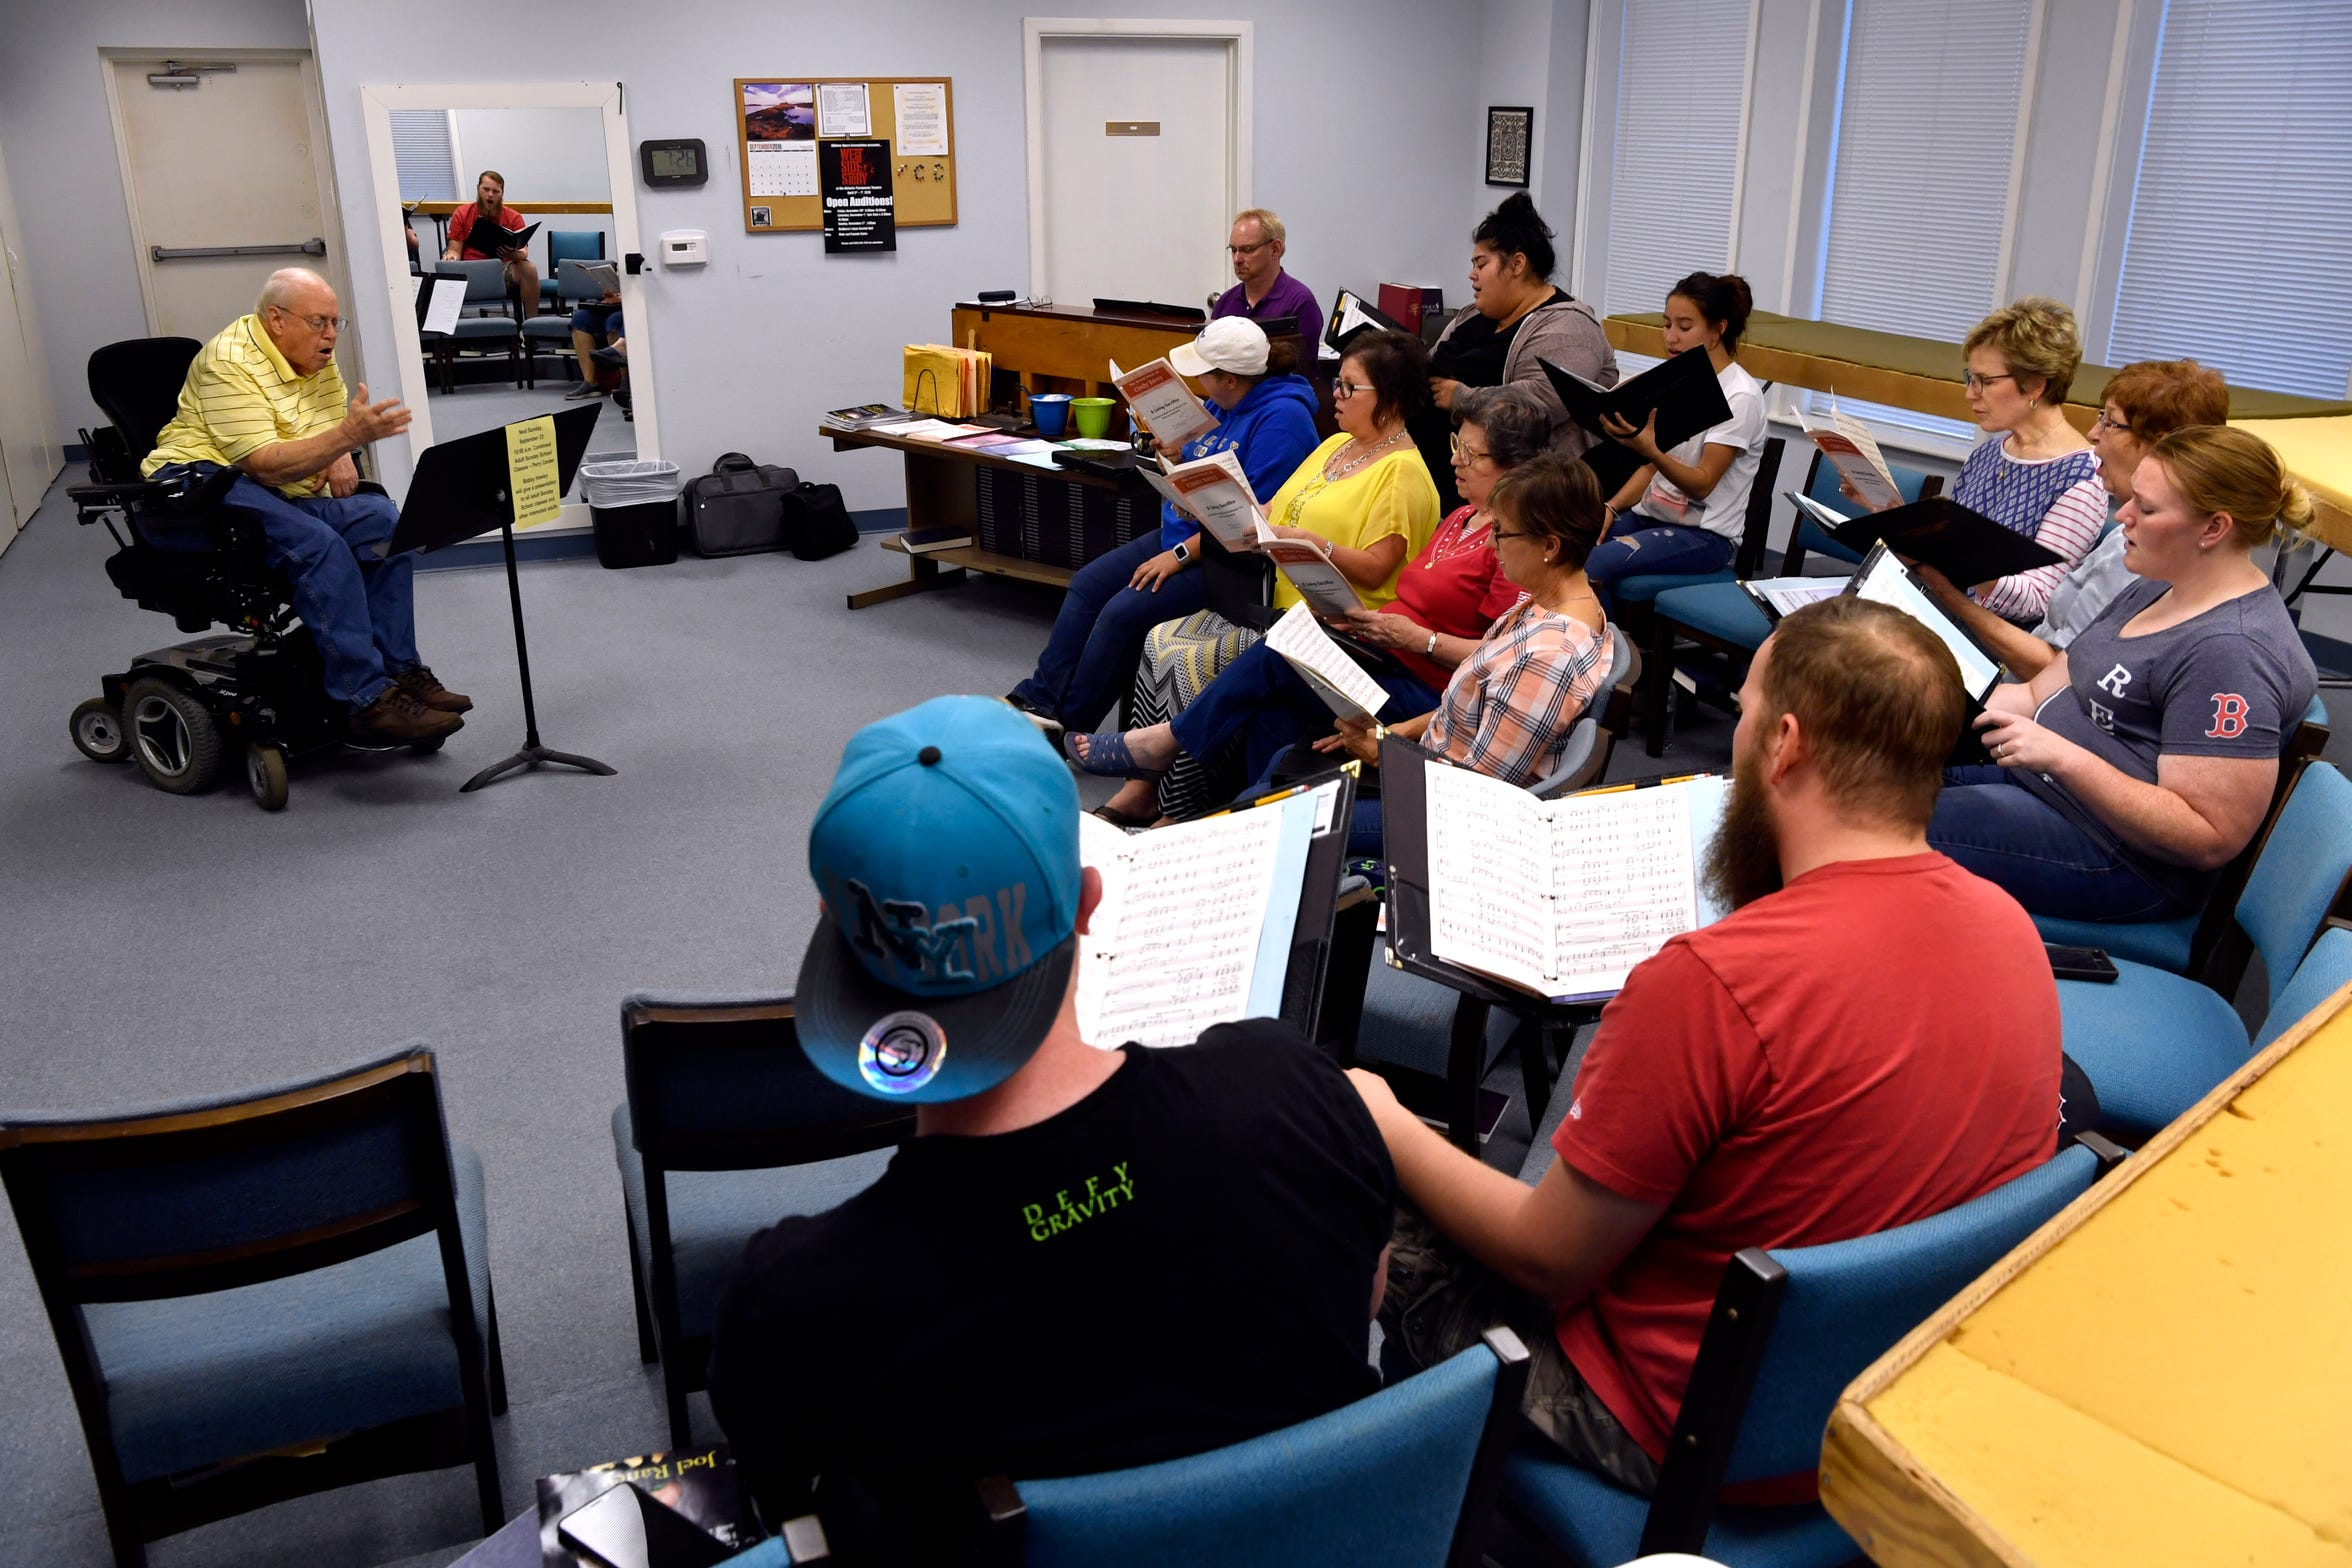 Joe Hill leads the First Christian Church Chancel Choir on Sept. 19 during practice. The building is one of several church properties listed for sale in Abilene.